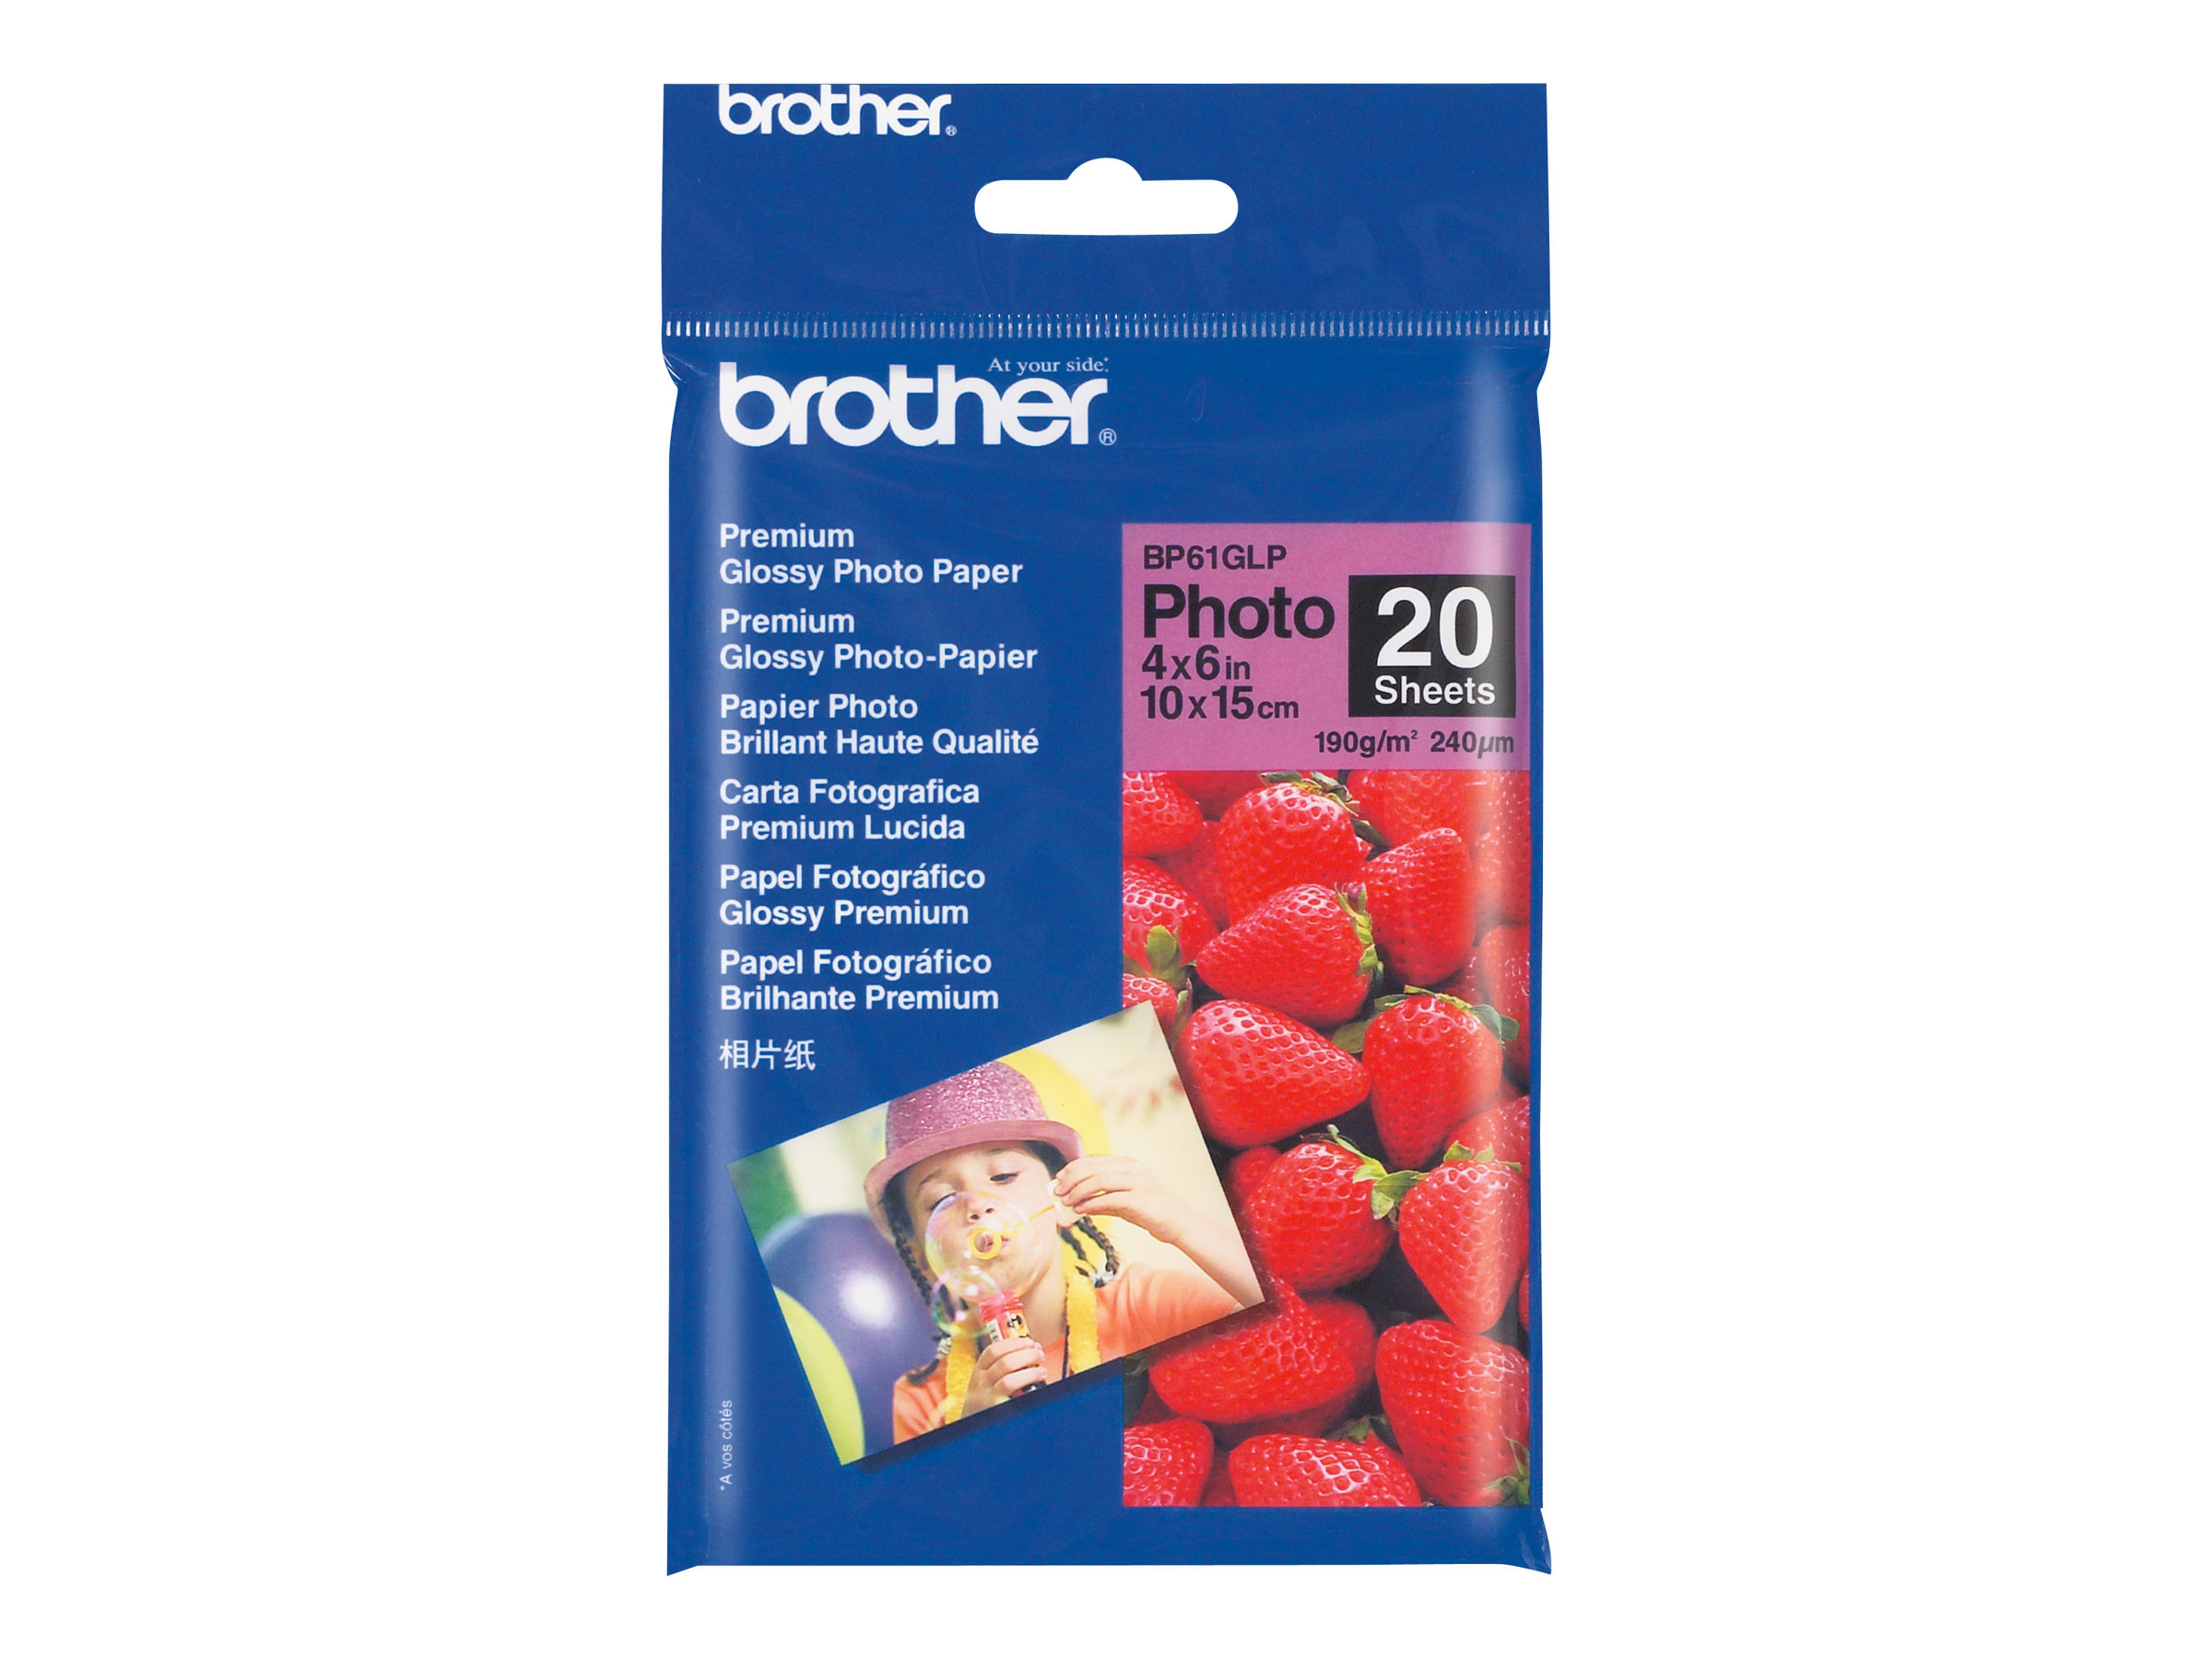 Brother BP 61GLP Premium Glossy Photo Paper - papier photo - 20 feuille(s)